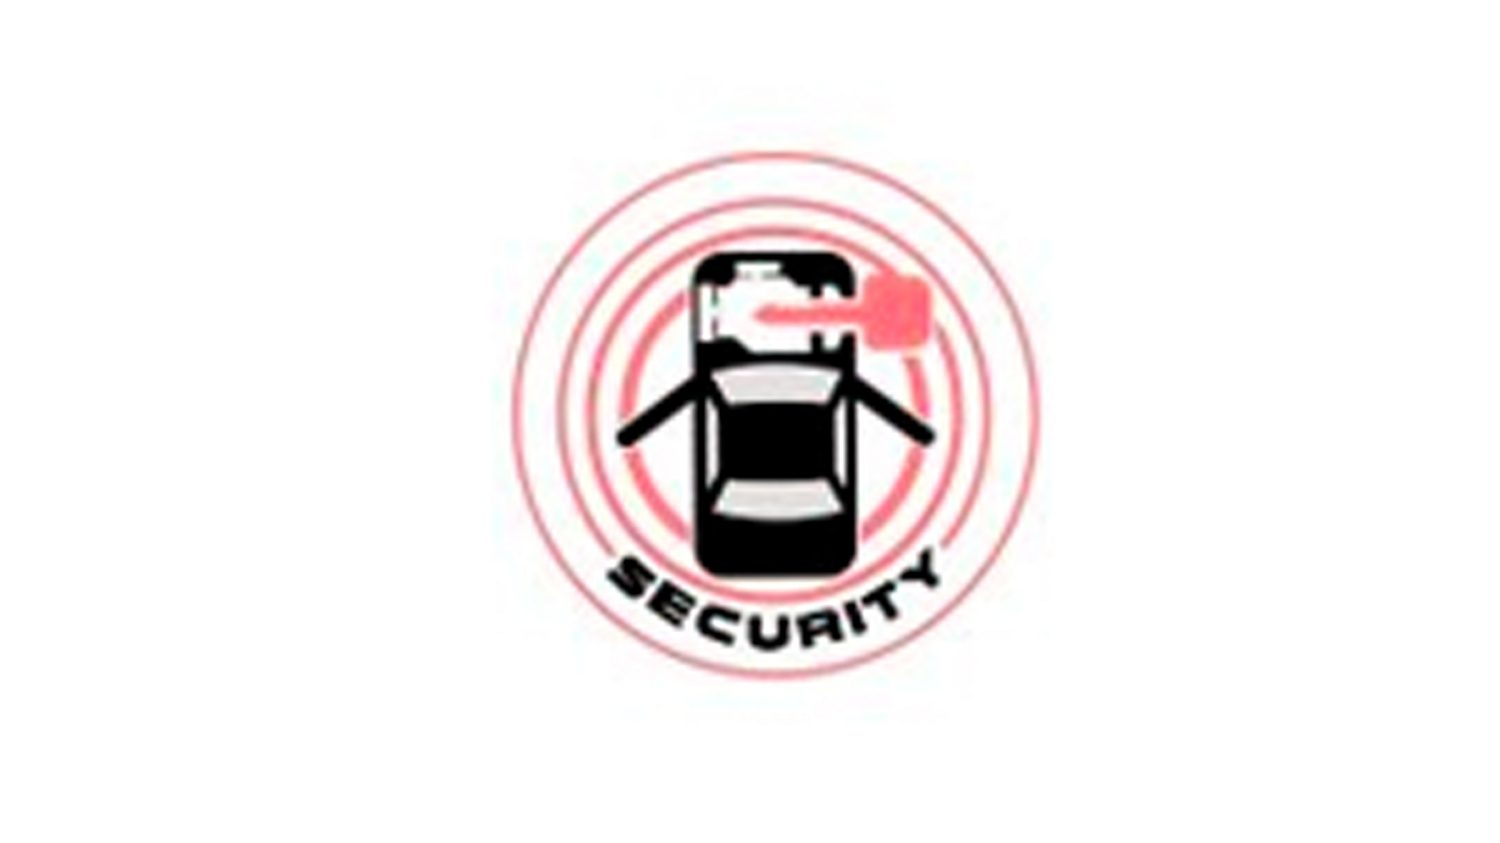 New Nissan e-NV200 safe and secure icon